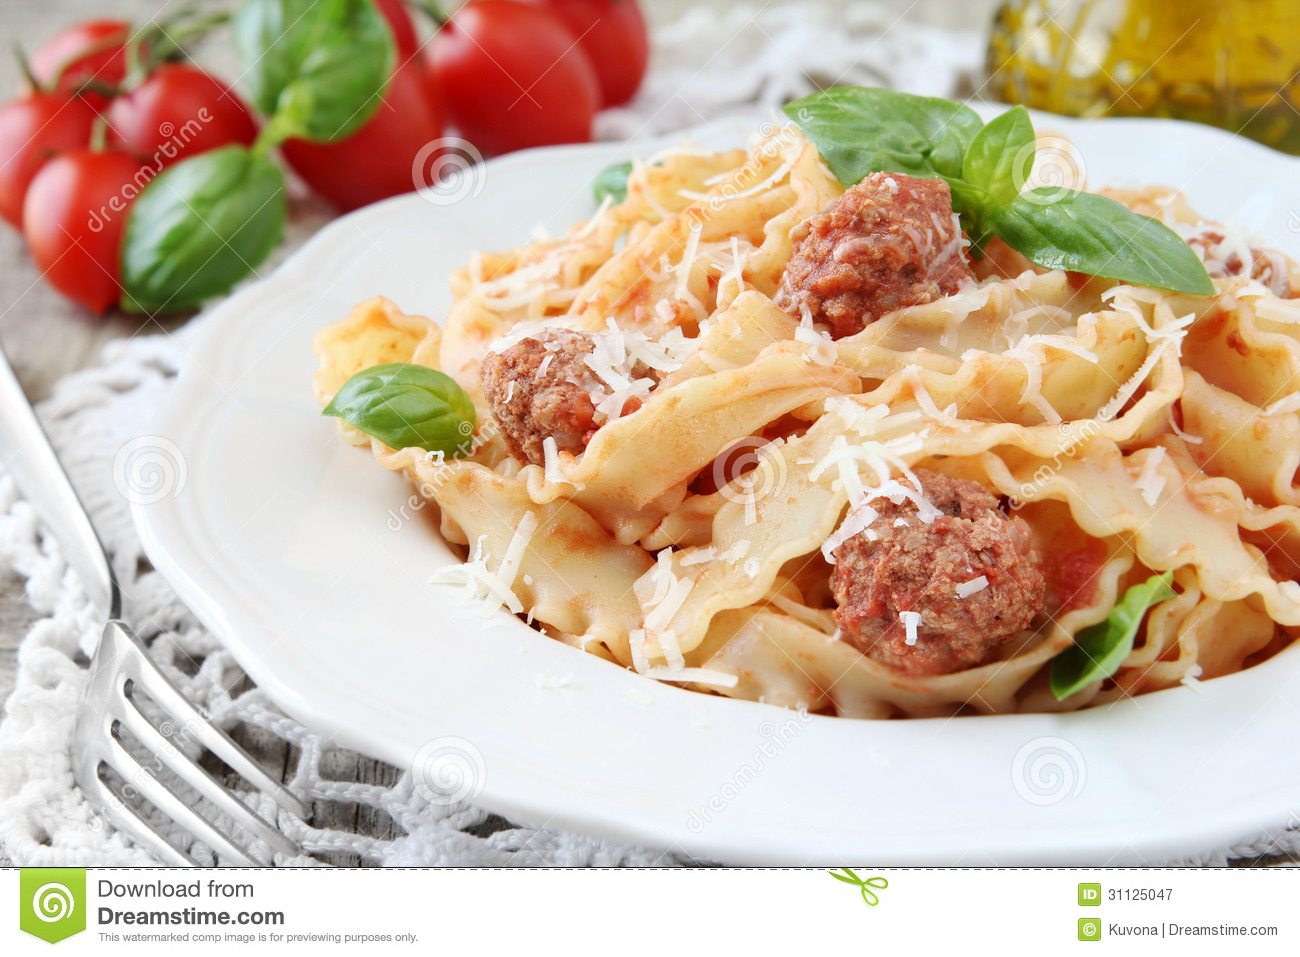 ... with tomato sauce, meatballs, fresh basil and grated parmesan cheese